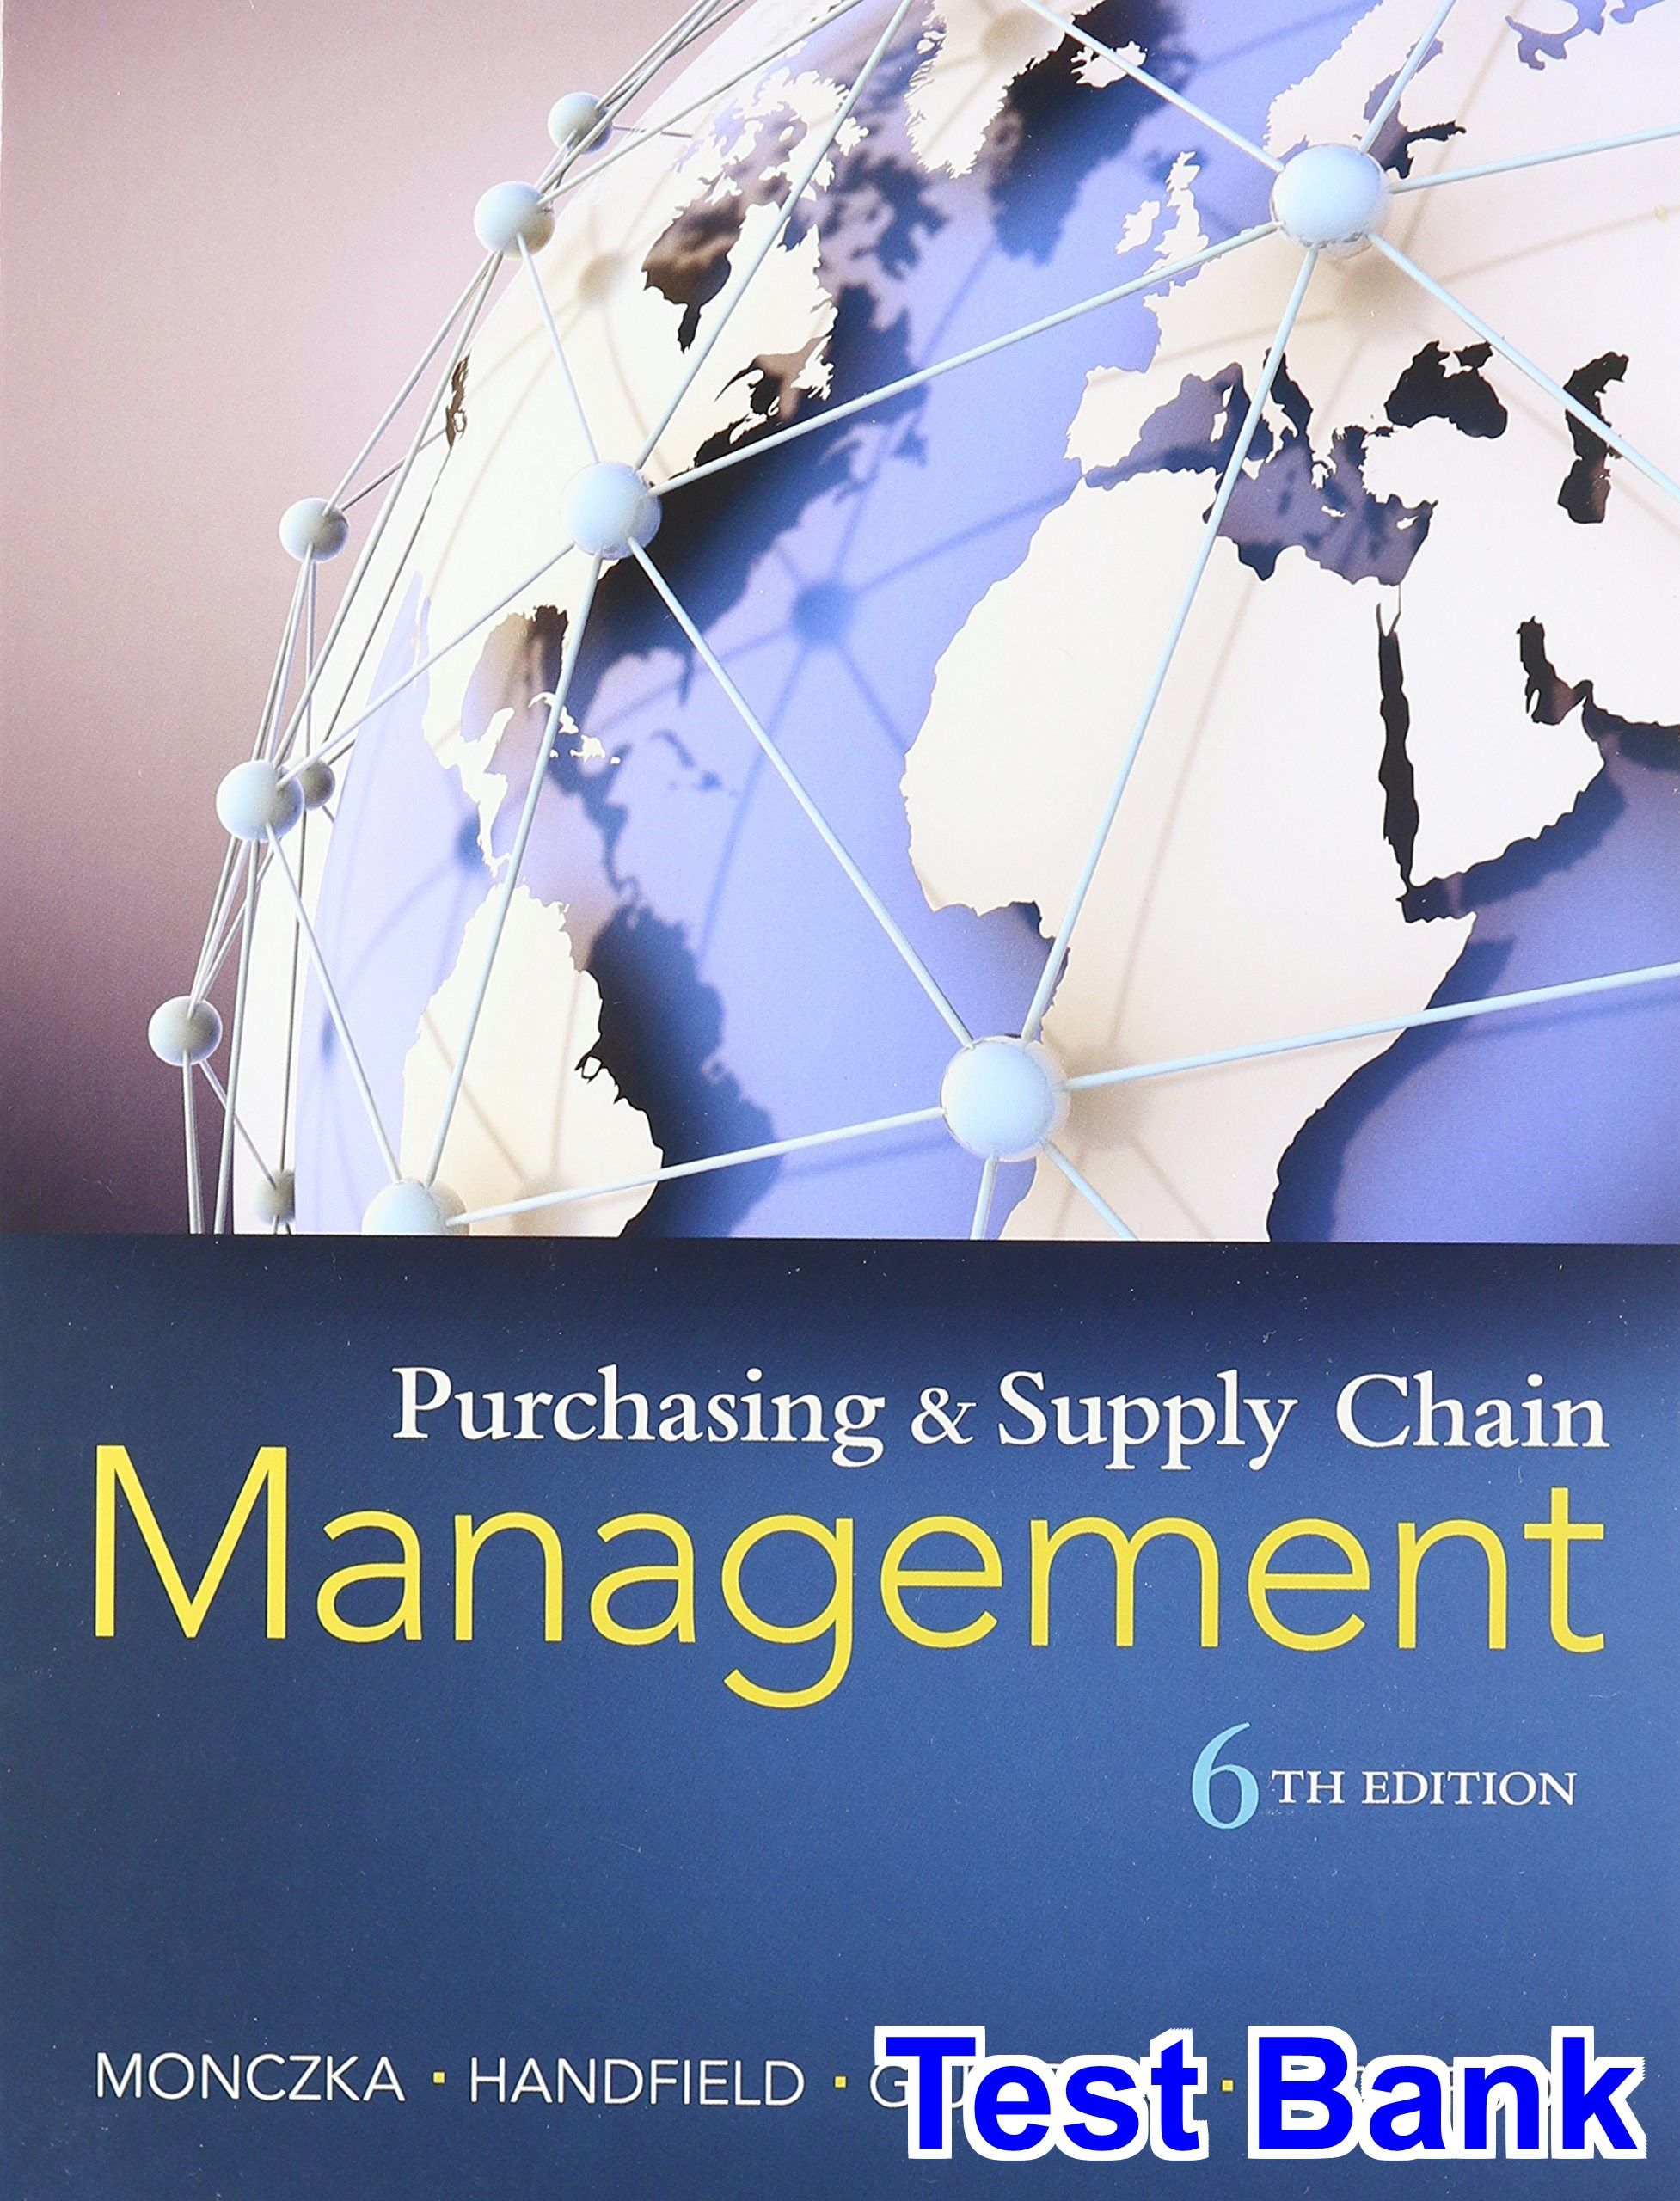 Purchasing and Supply Chain Management 6th Edition Monczka Test Bank - Test  bank, Solutions manual, exam bank, quiz bank, answer key for textbook  download ...